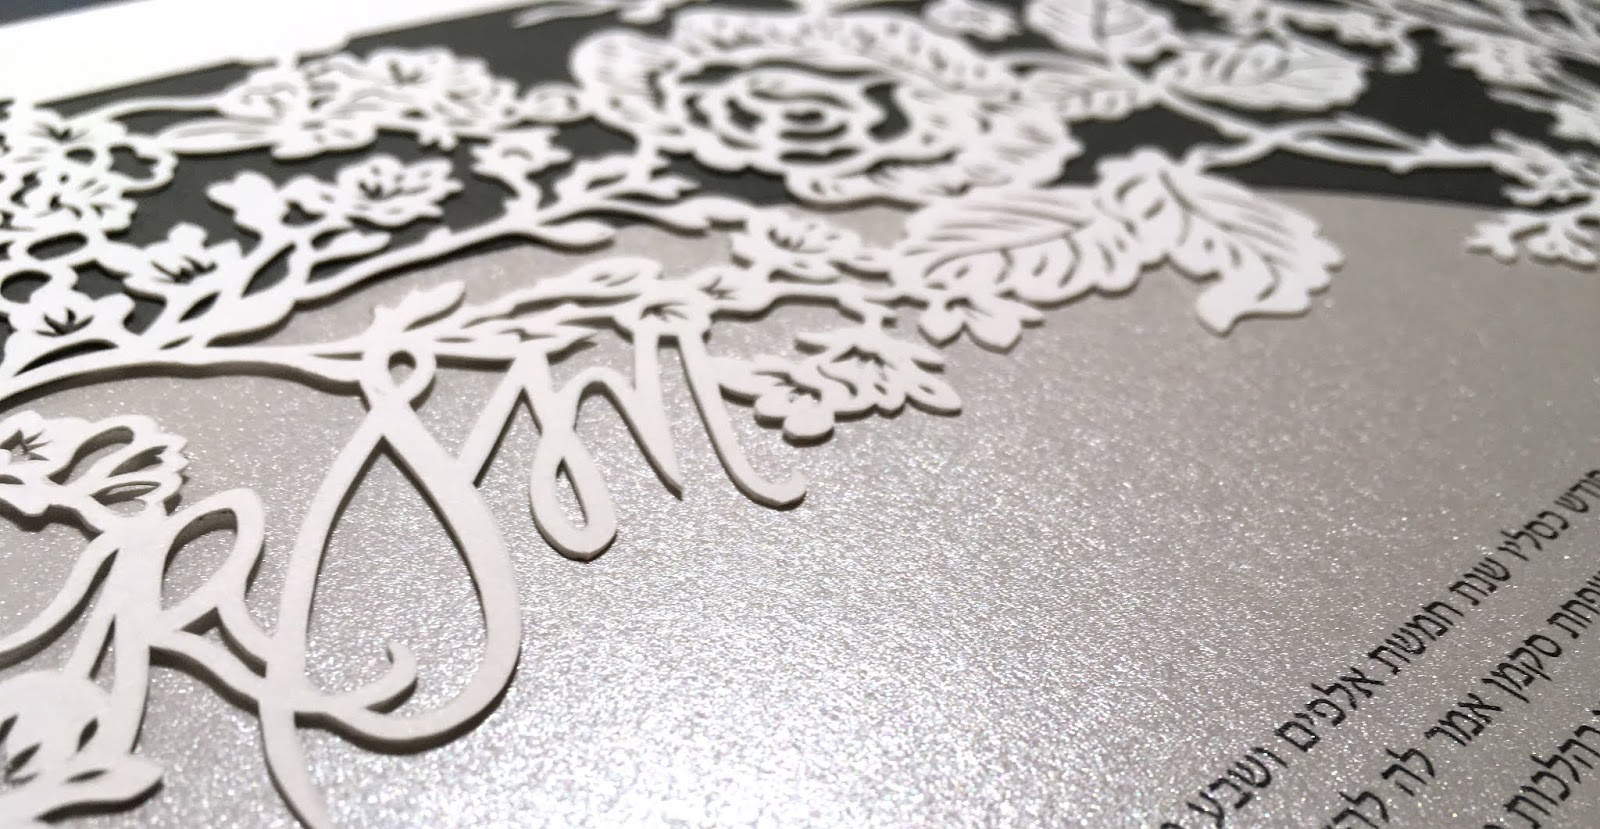 Handmade papercut by Naomi Shiek features delicate flowers and blooms such as Cherry Blossom branches, Roses, and Daisies. Also features a custom monogram